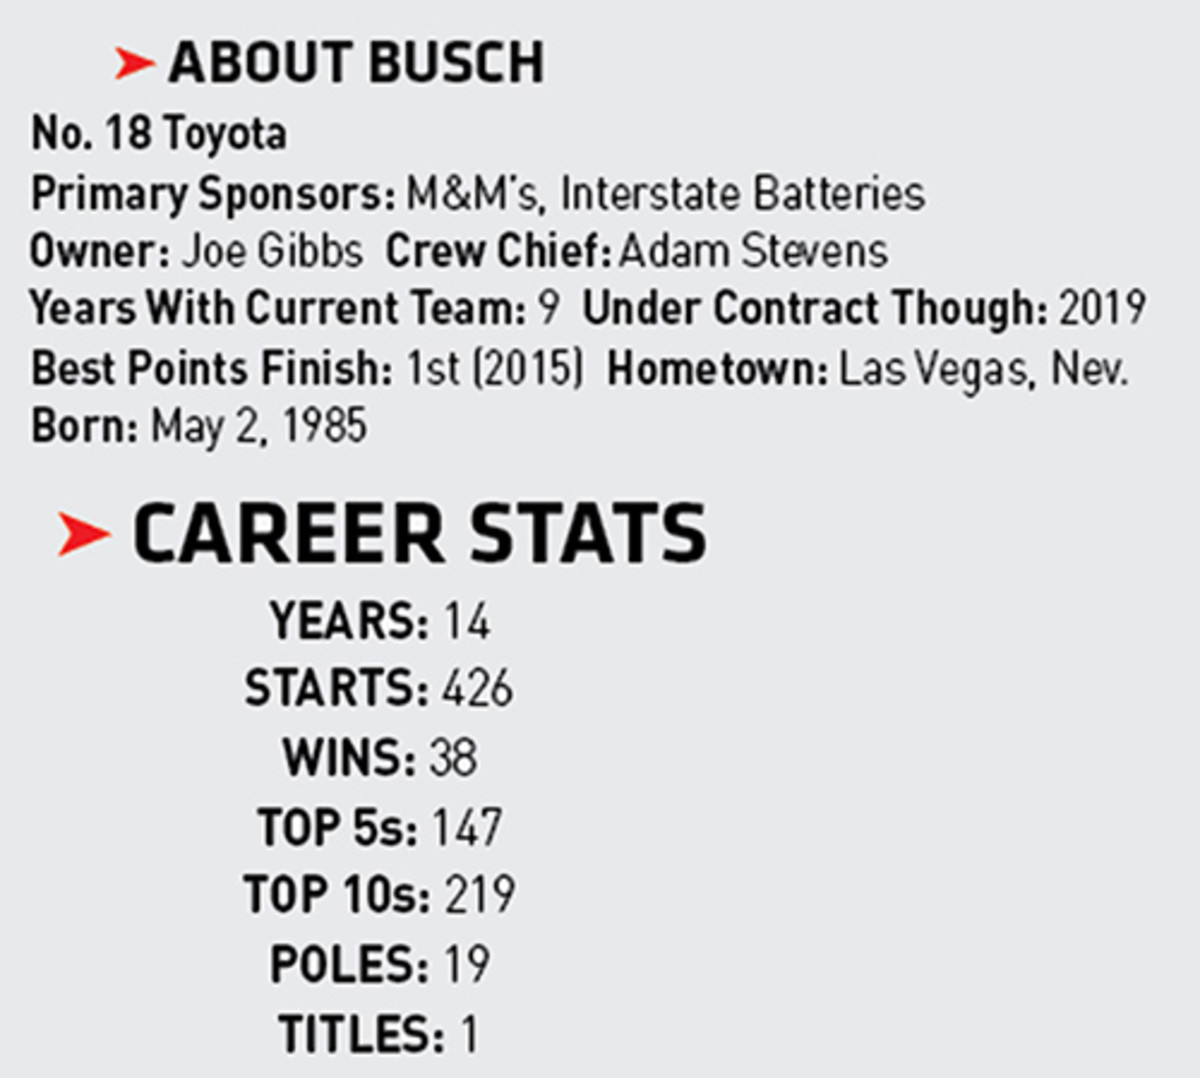 Kyle Busch's Monster Energy NASCAR Cup driver stats.